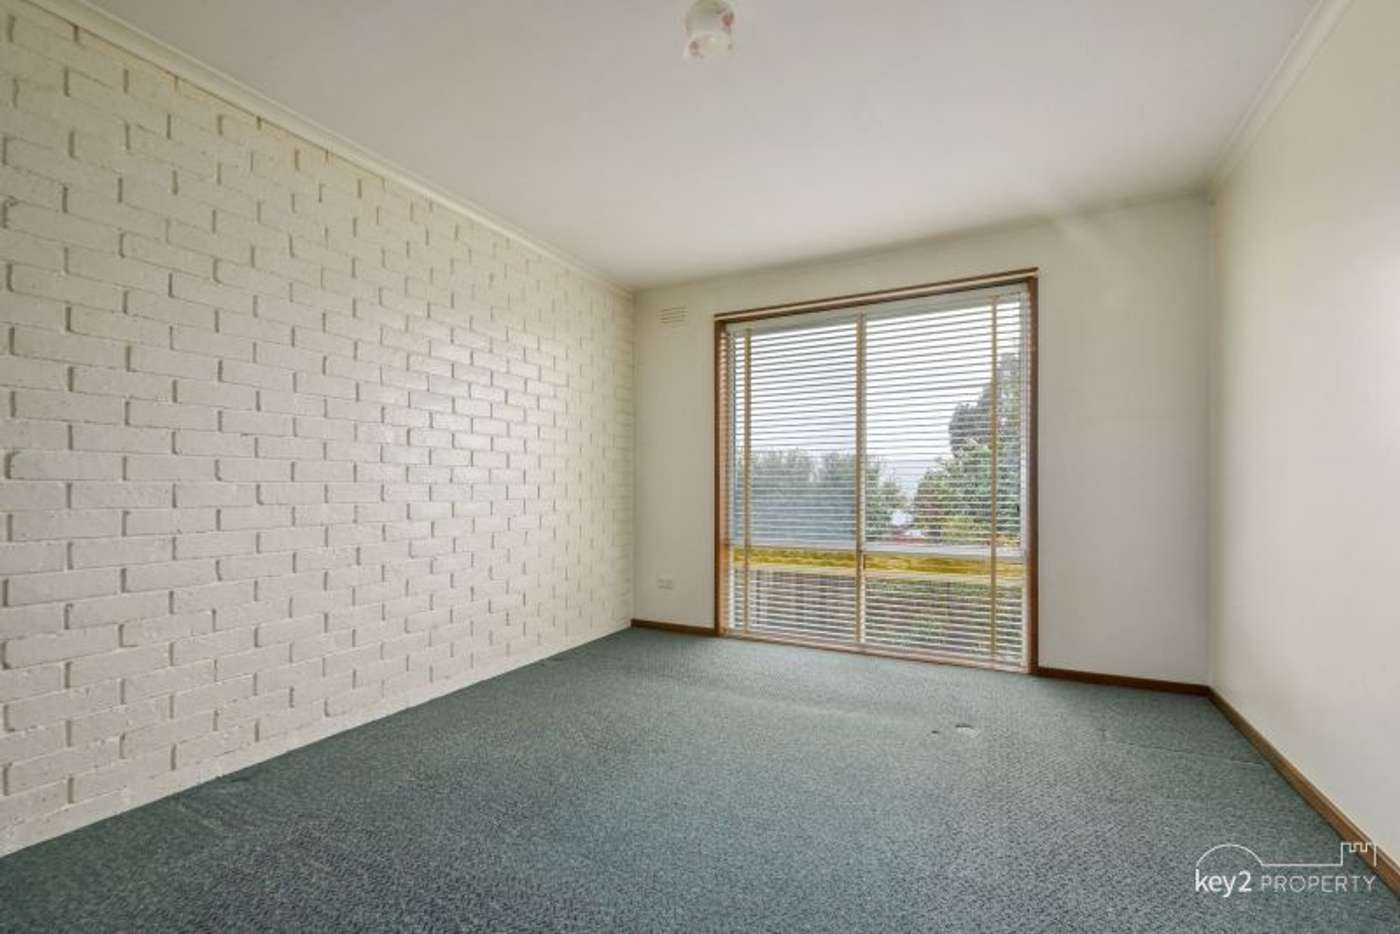 Fifth view of Homely unit listing, 2/32a Strahan Road, Newstead TAS 7250